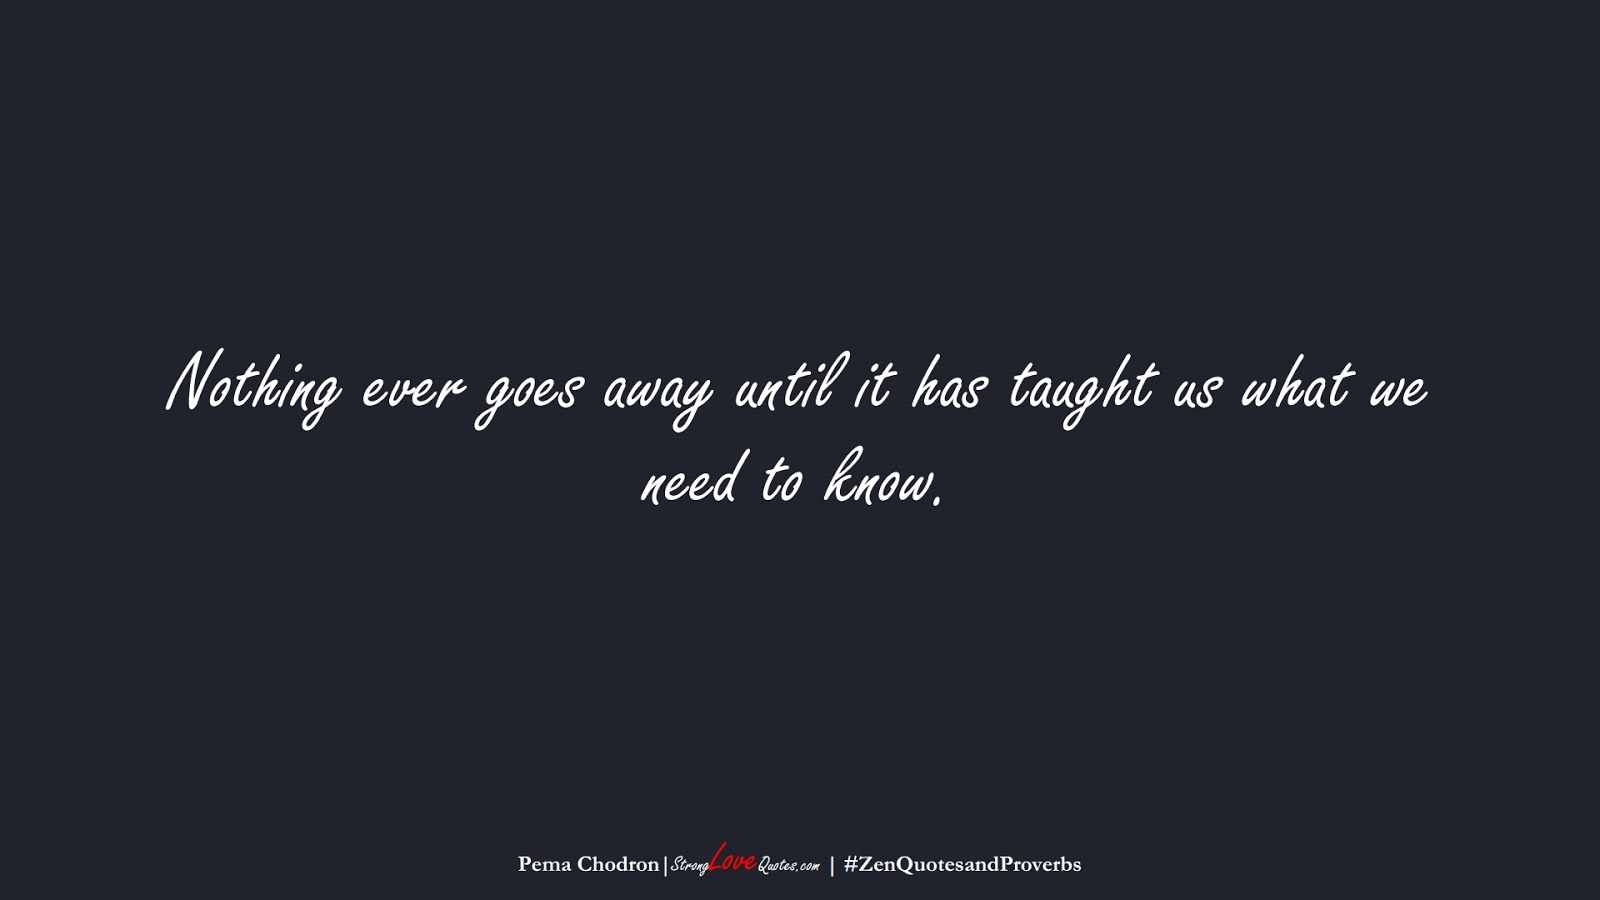 Nothing ever goes away until it has taught us what we need to know. (Pema Chodron);  #ZenQuotesandProverbs